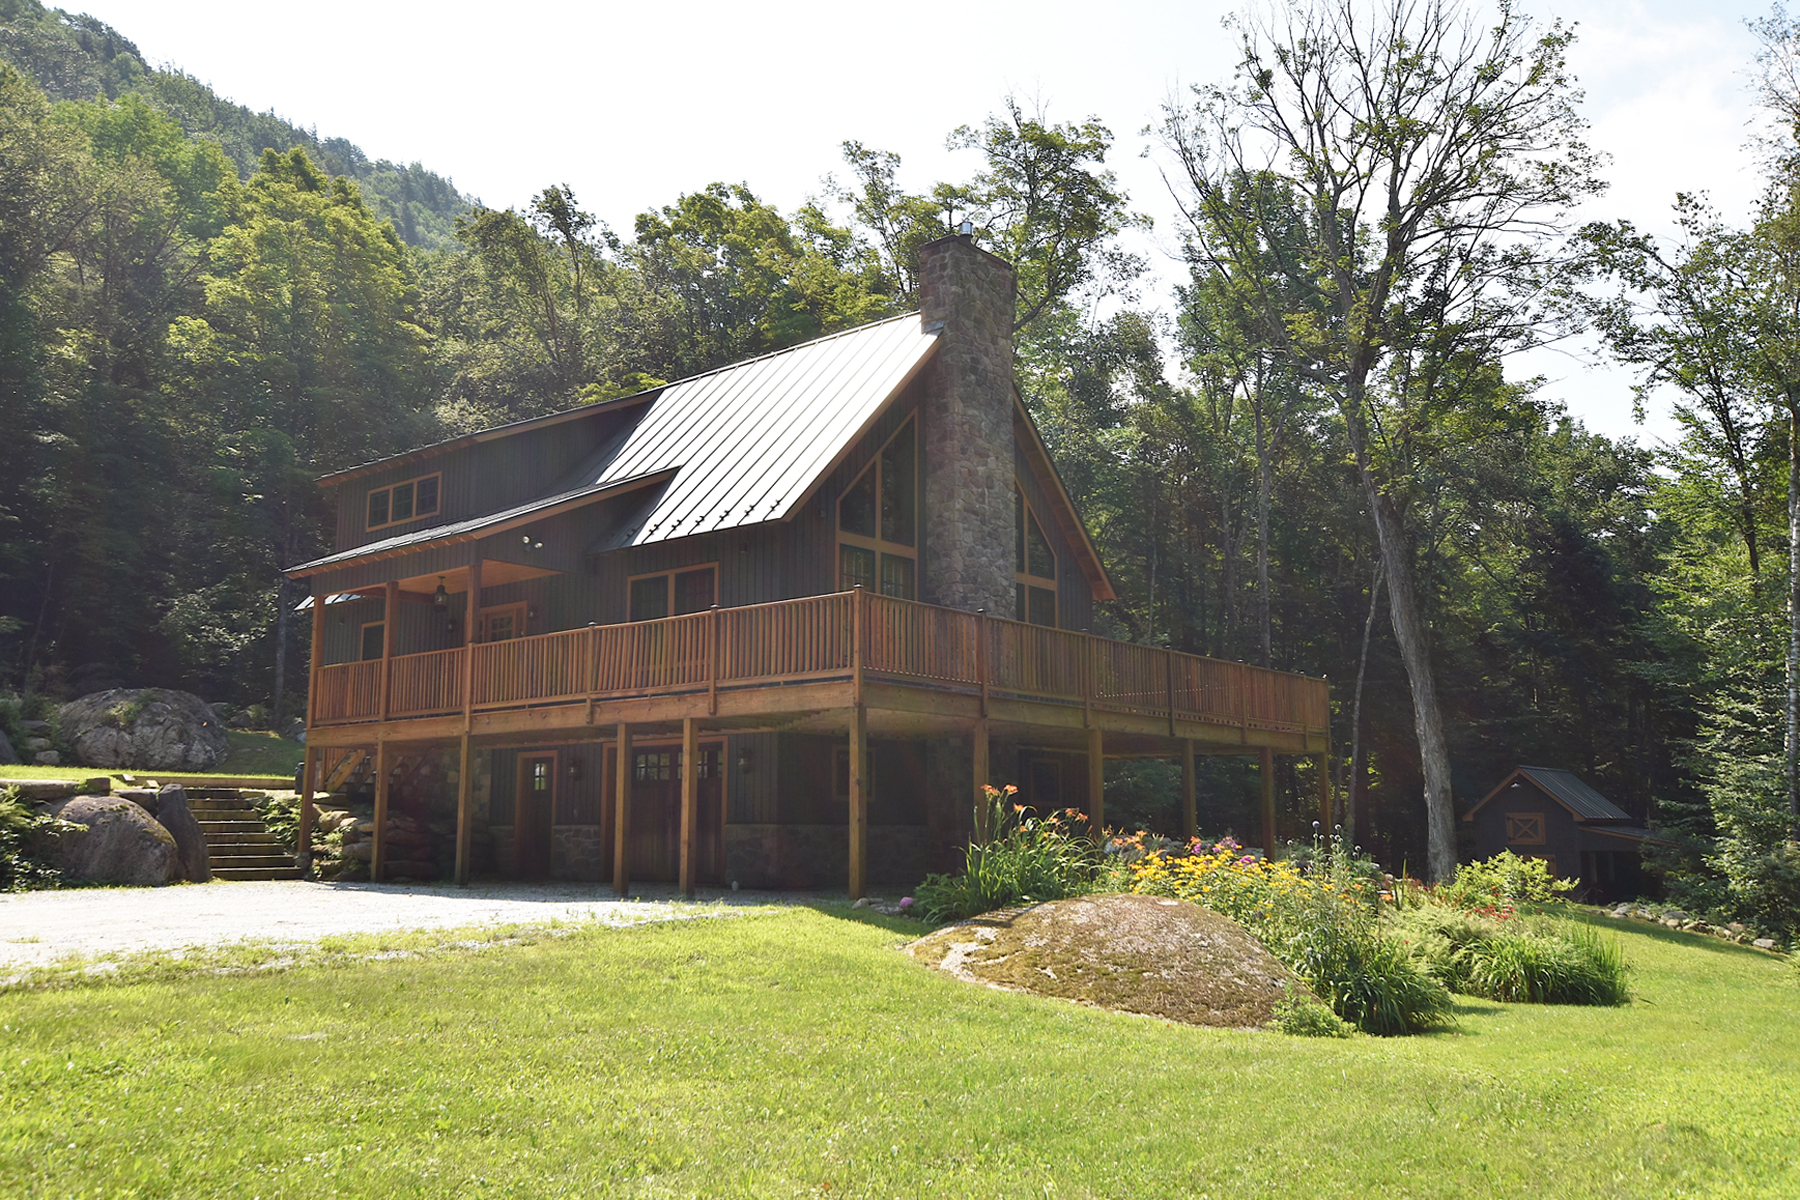 Single Family Homes for Sale at 256 Chittenden Road, Chittenden 256 Chittenden Rd Chittenden, Vermont 05737 United States